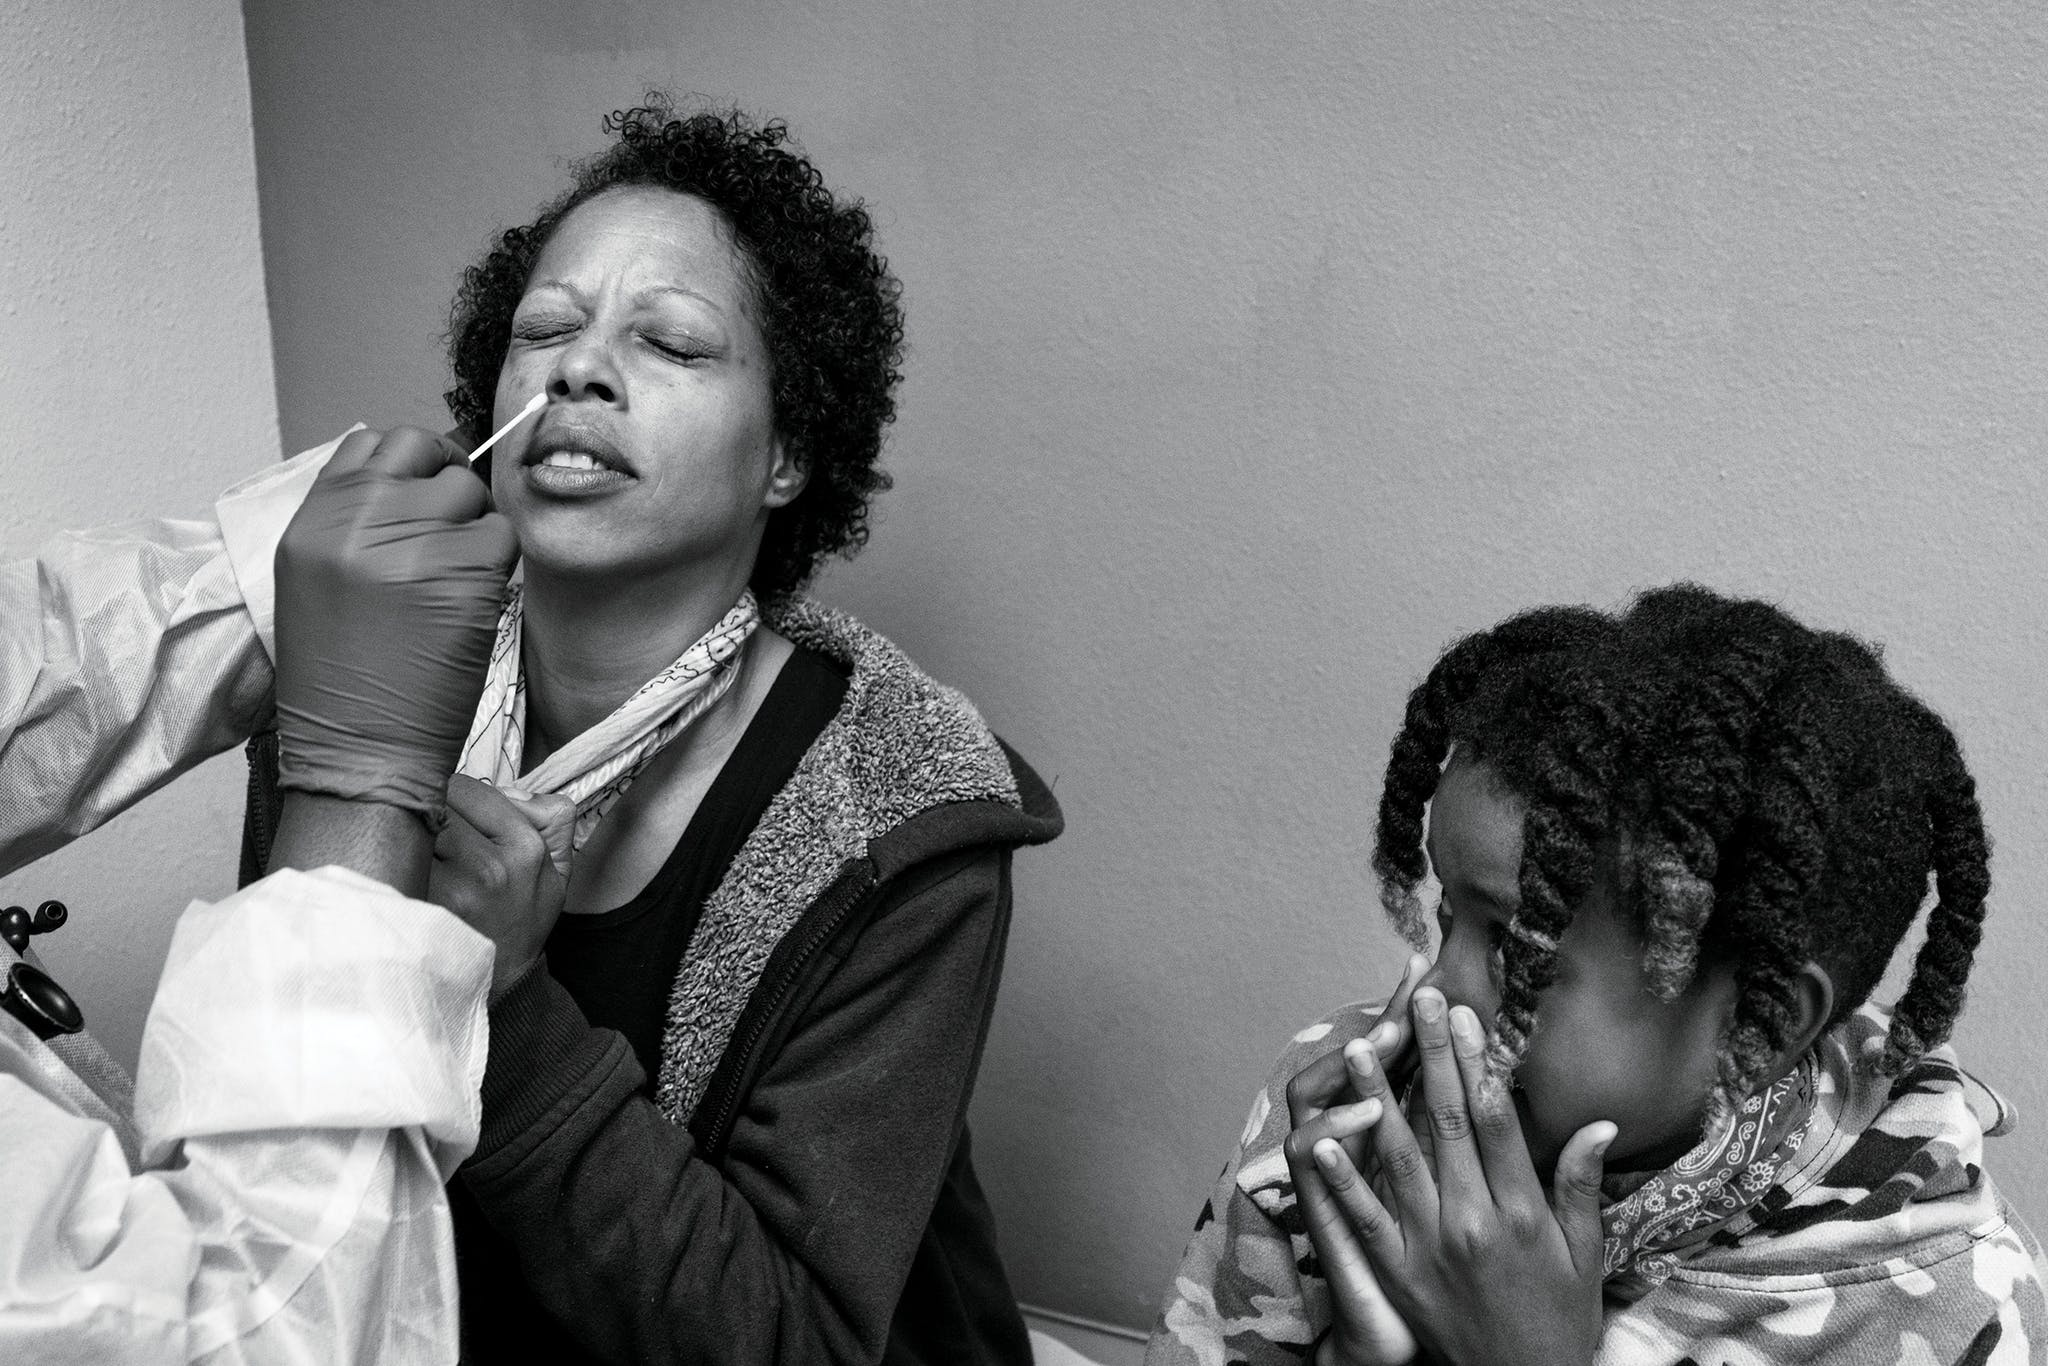 Ante Lewis, 11, watches his mother, Darline, 42, as she gets tested for COVID-19.